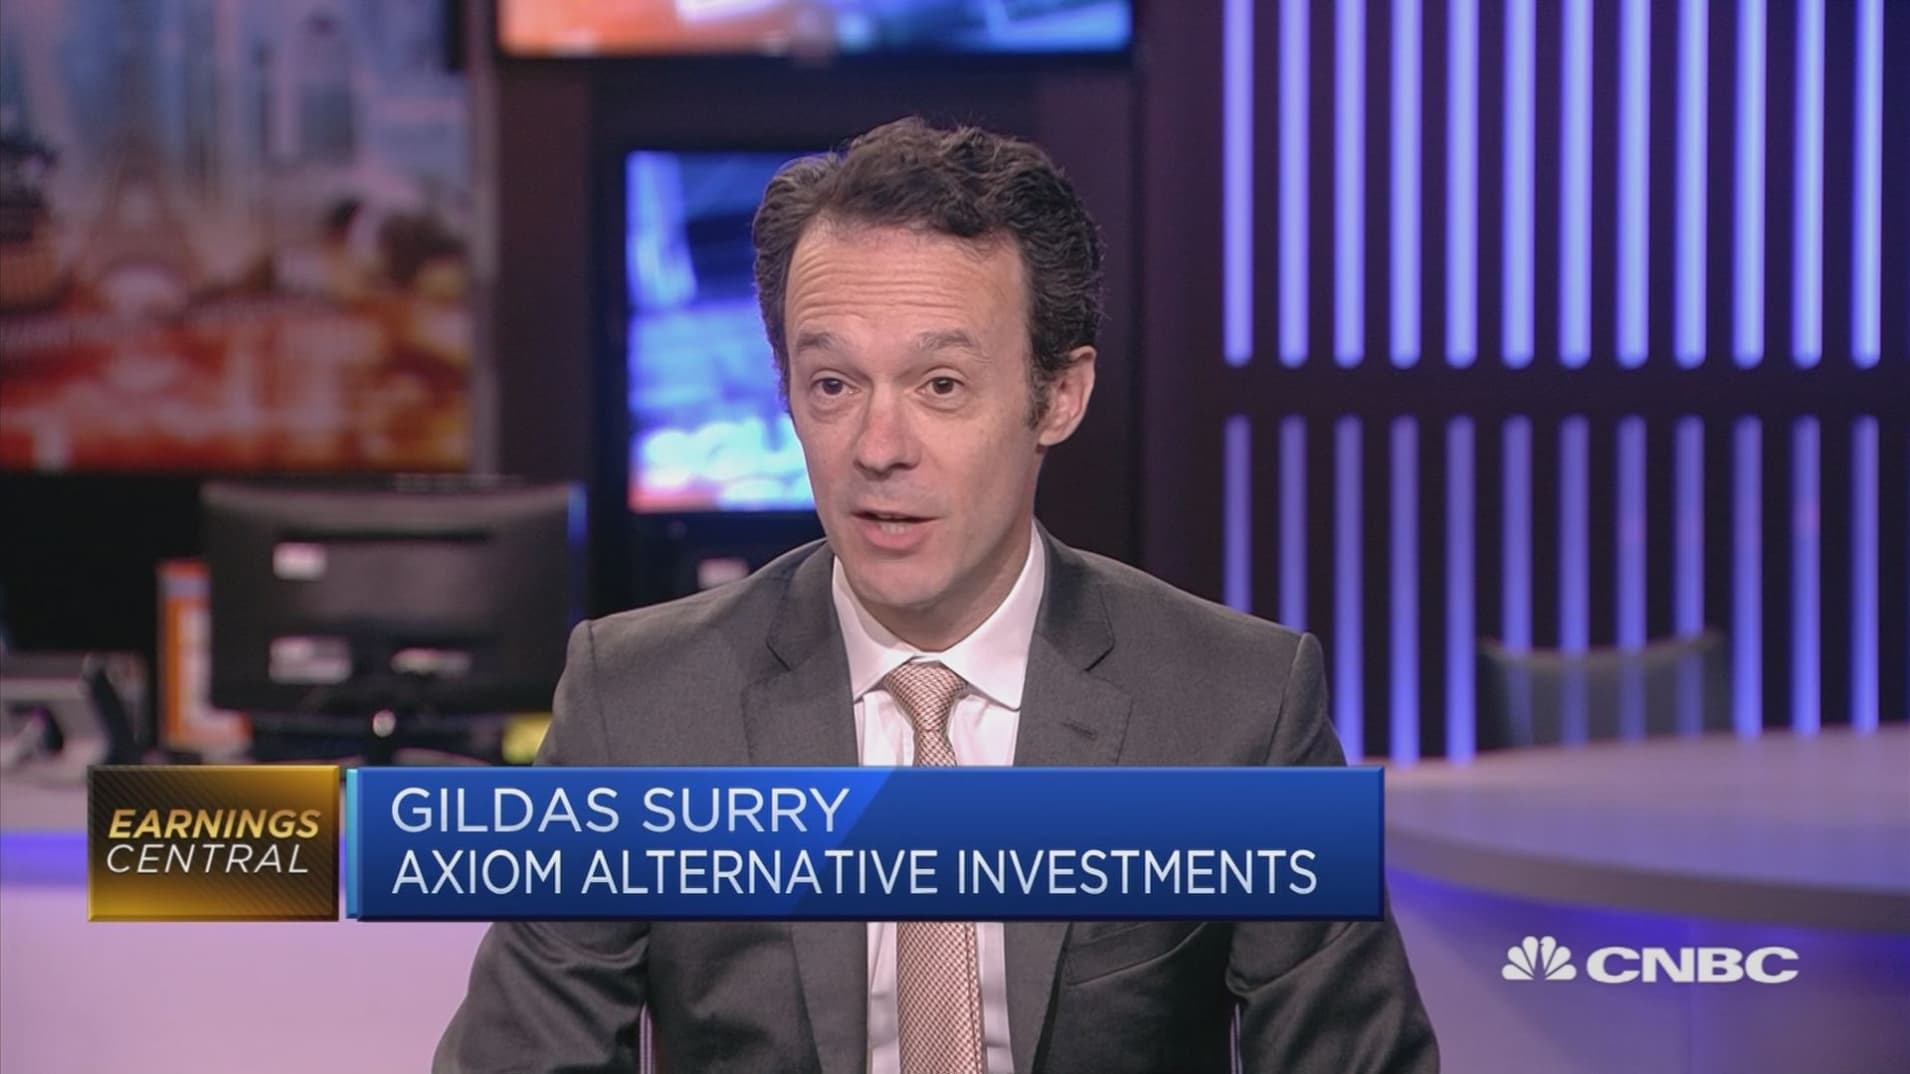 Expecting 'soft batch' of market revenues from investment banks, analyst says